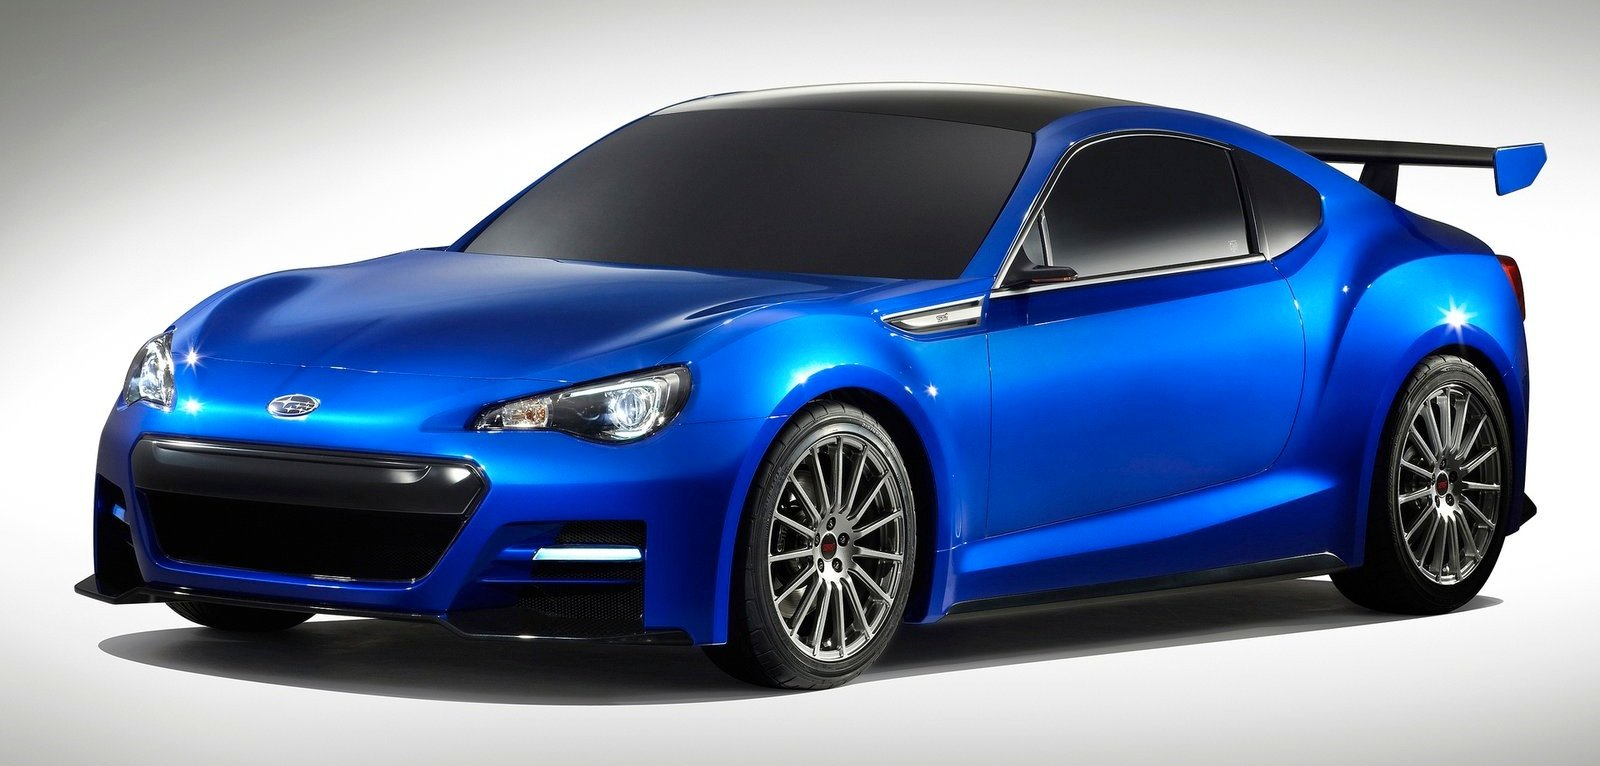 subaru brz sti enhanced japanese sports car teased photos 1 of 4. Black Bedroom Furniture Sets. Home Design Ideas